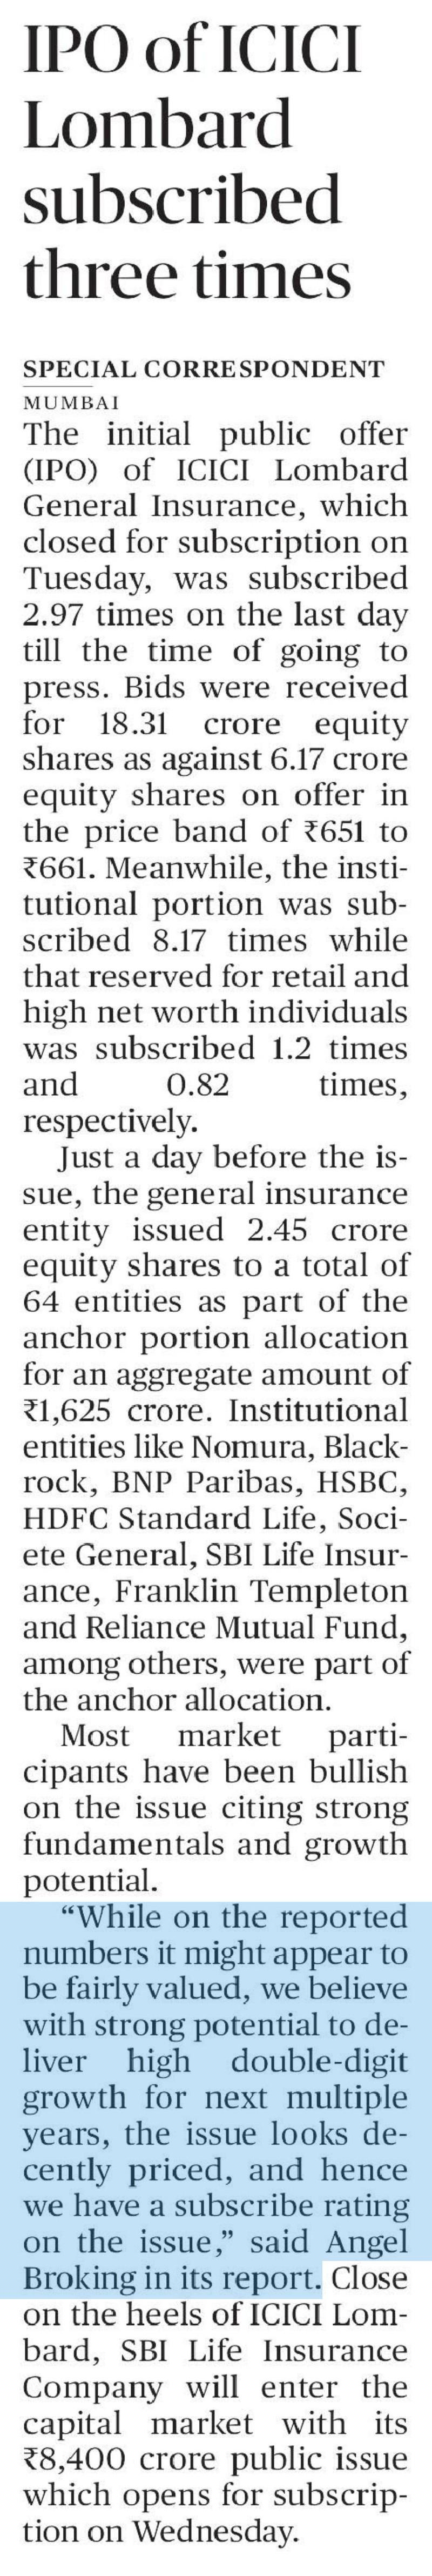 IPO of ICICI Lombard Subscribed three times